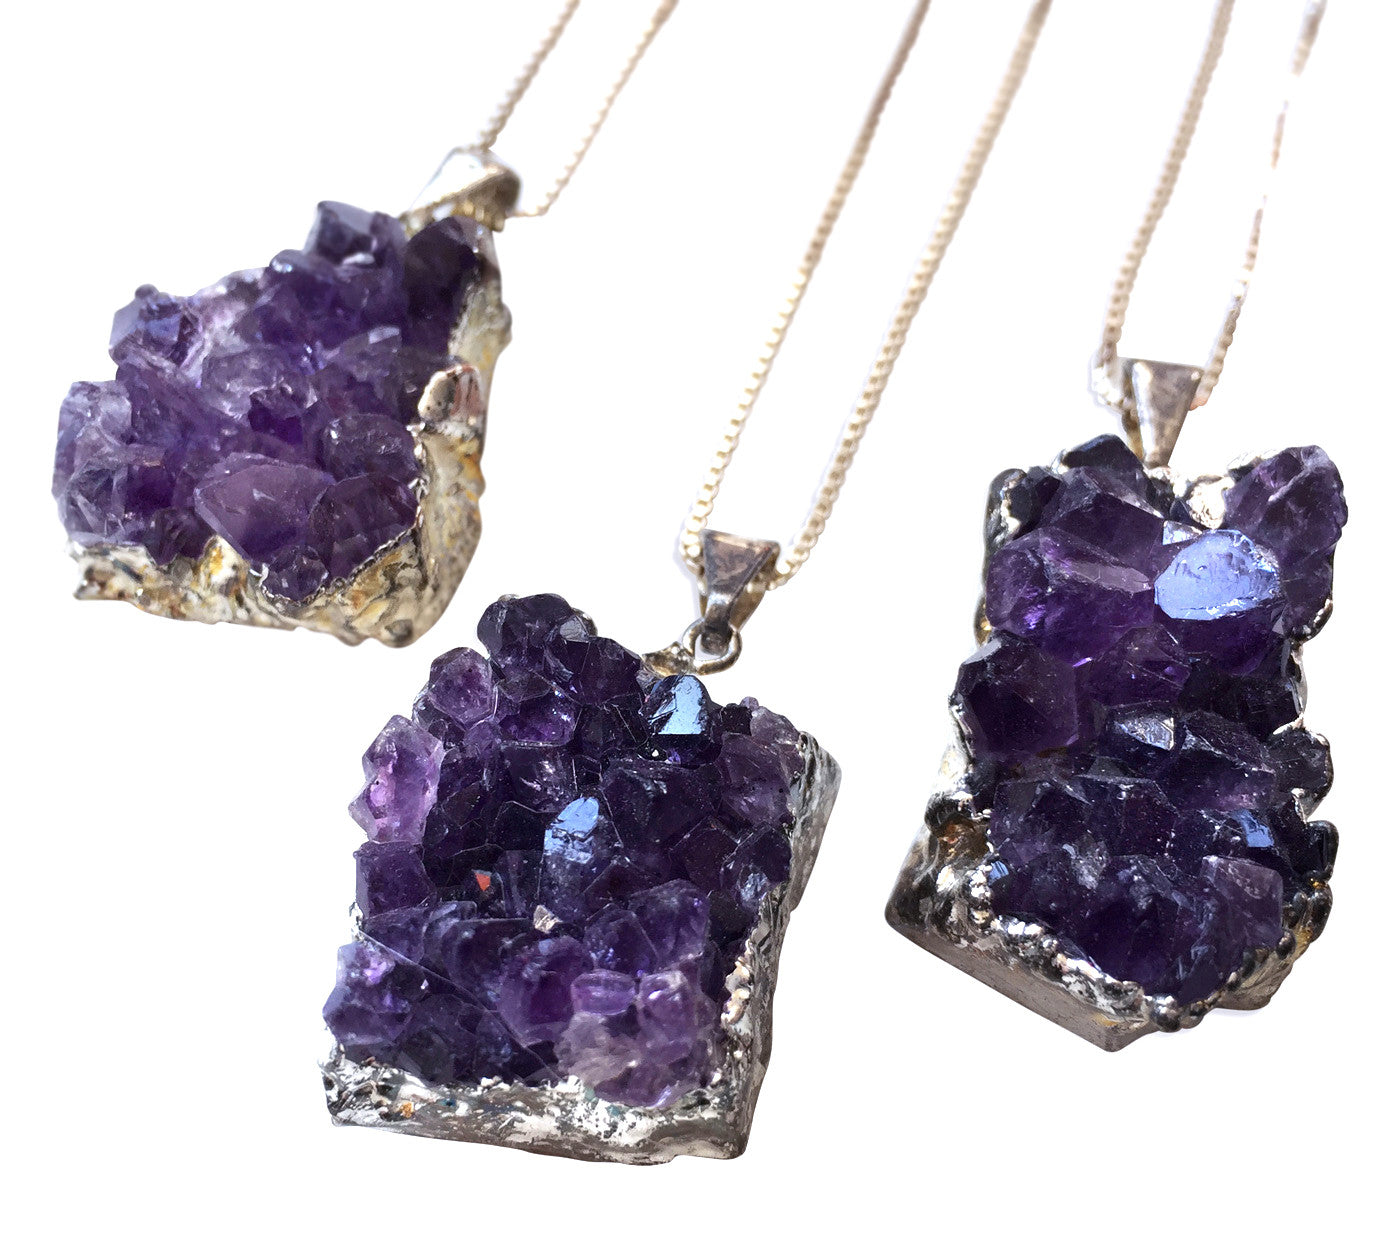 Amethyst Crystal Cluster Pendant, Silver Chain Necklace ...